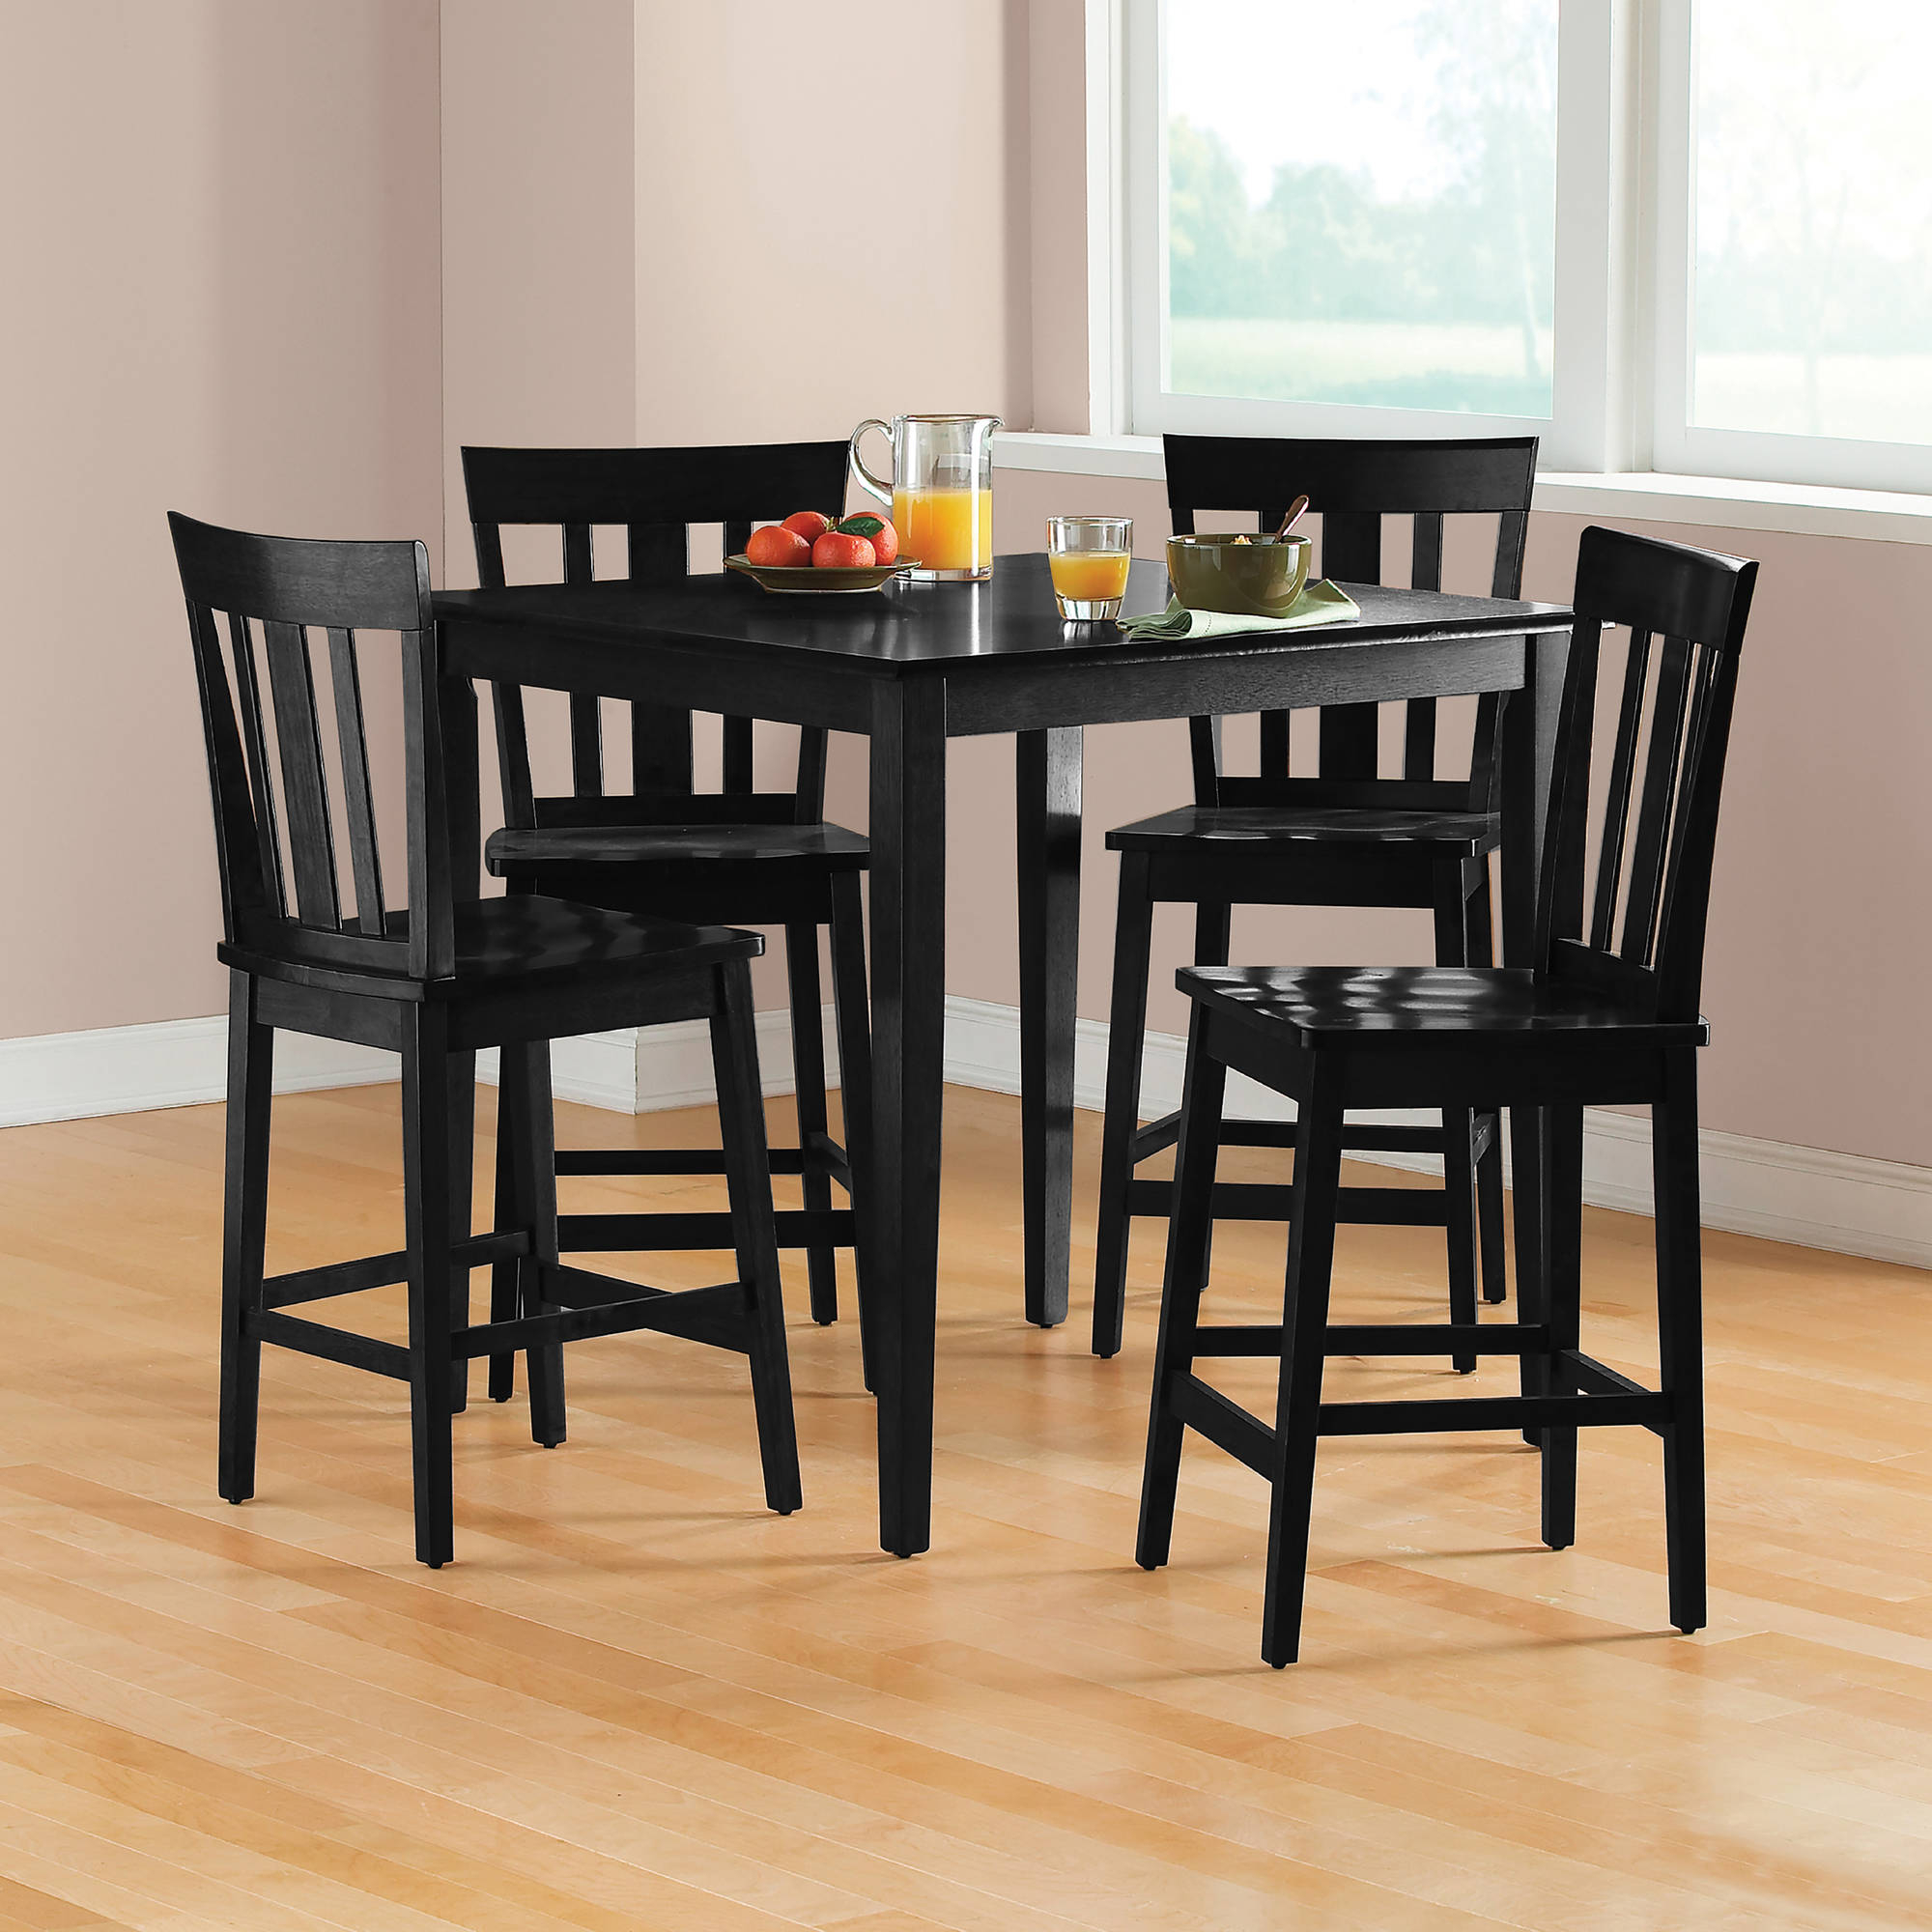 2019 Sheetz 3 Piece Counter Height Dining Sets in Mainstays 5-Piece Mission Counter-Height Dining Set - Walmart